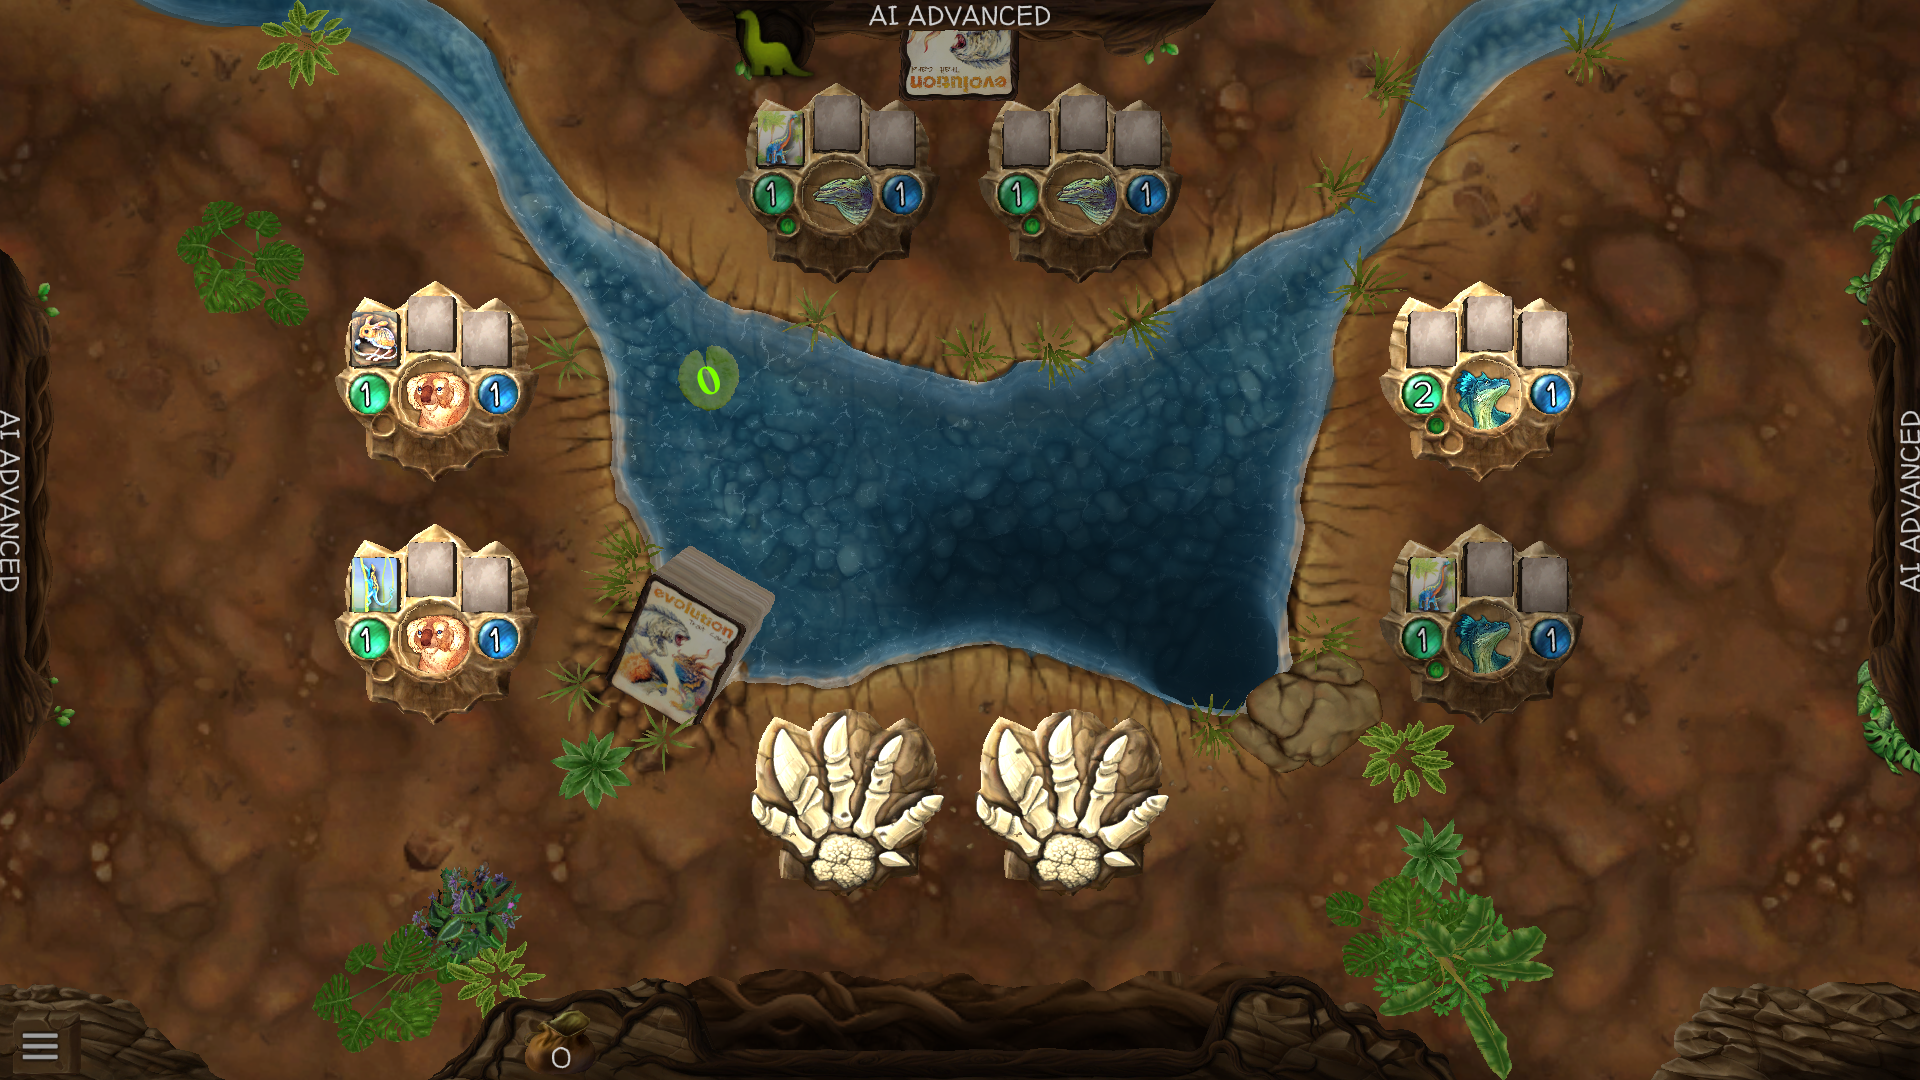 award-winning-board-game-evolution-comes-to-pc-and-mobile-12-feb-frikigamers.com